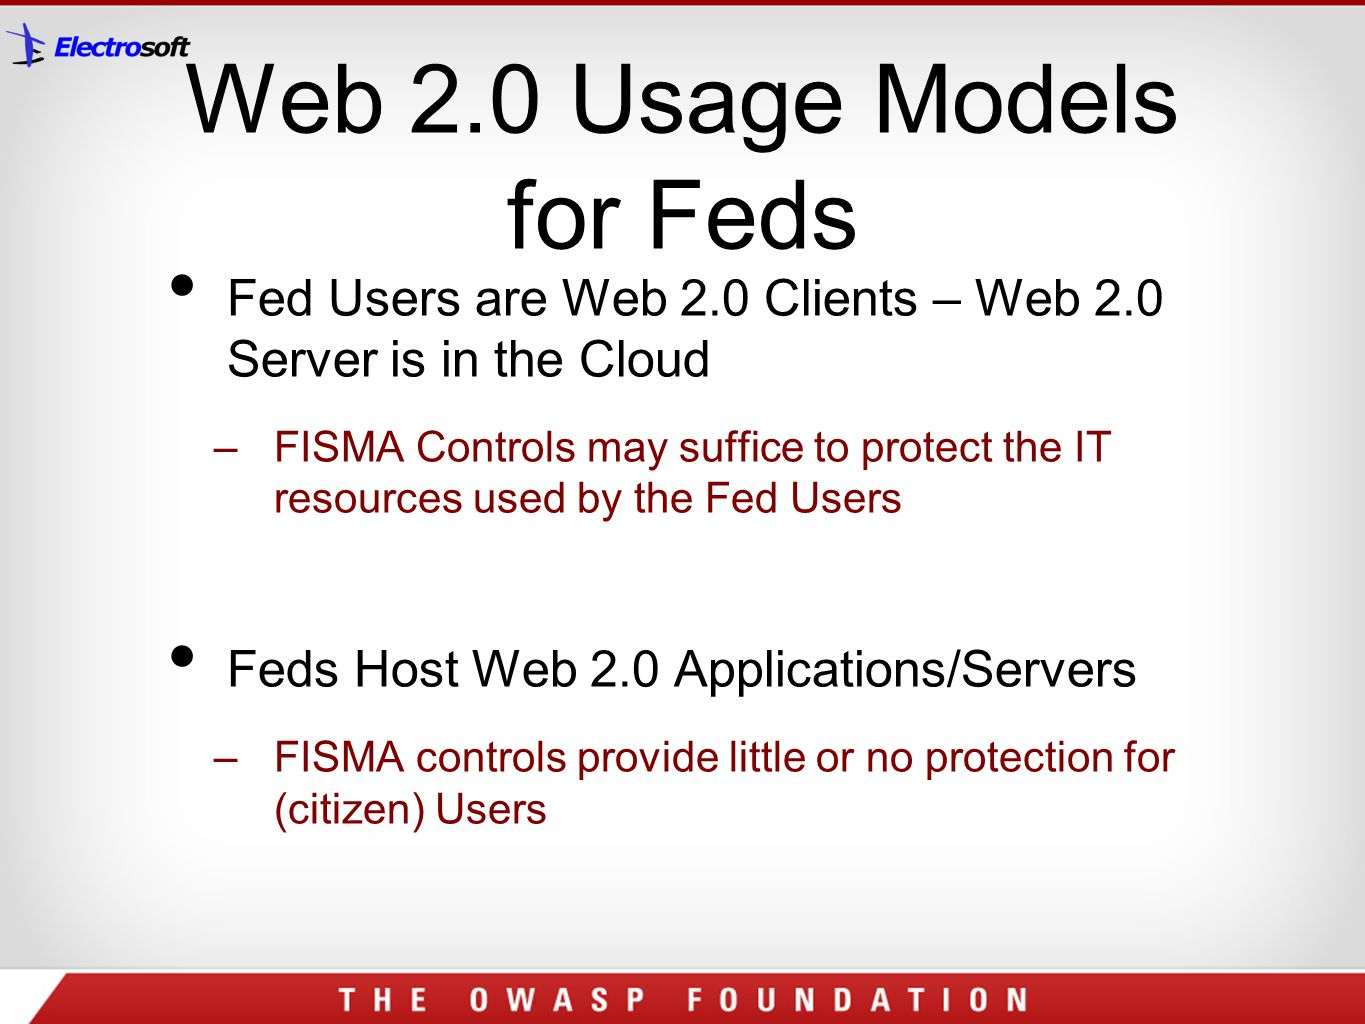 Web 2.0 Usage Models for Feds